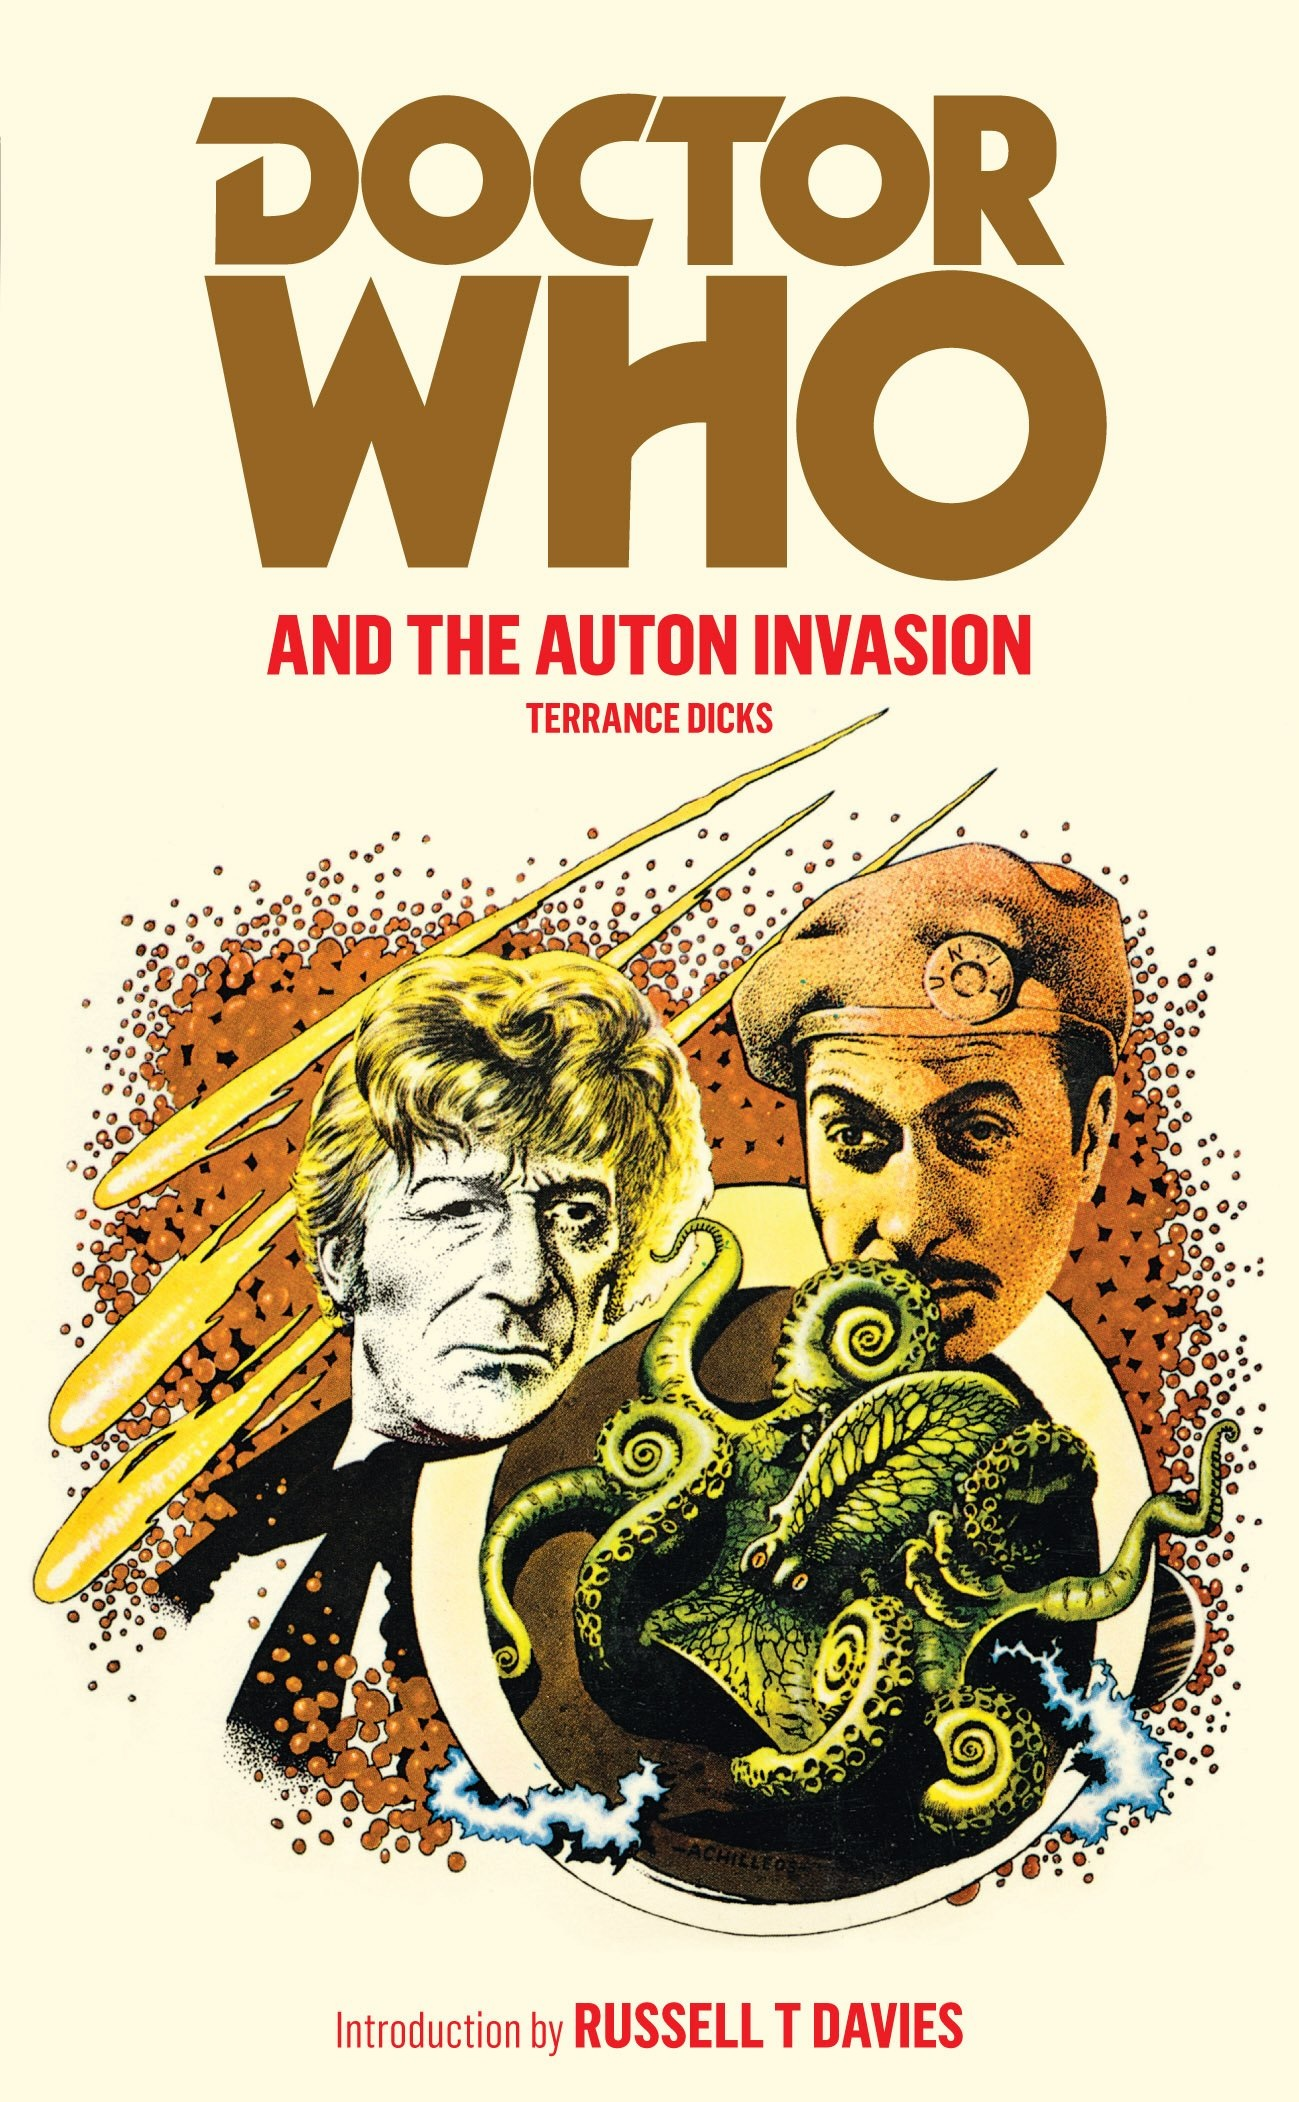 Reviewed: The Essential Terrance Dicks – Doctor Who and the Auton Invasion (Target)